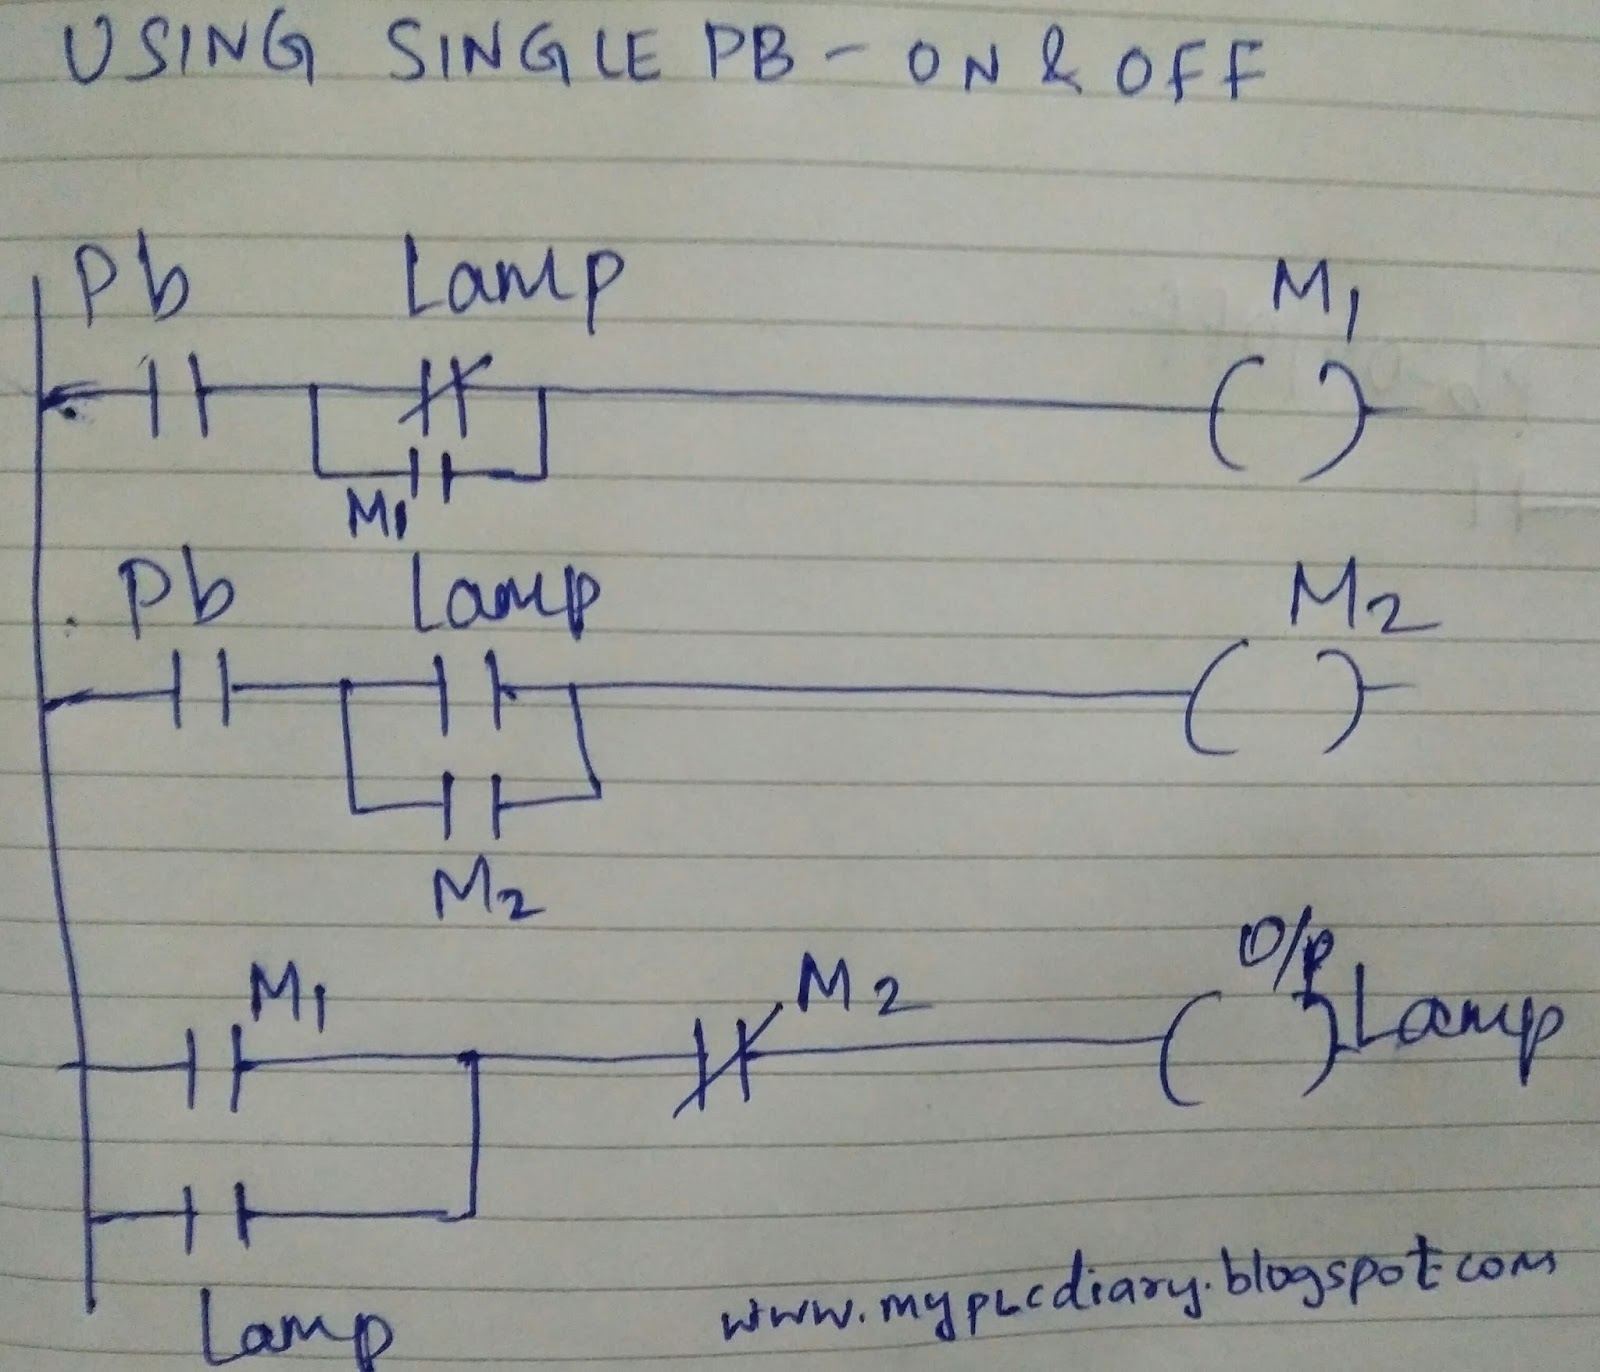 Using Single Push Button For On And Off Ladder Logic My